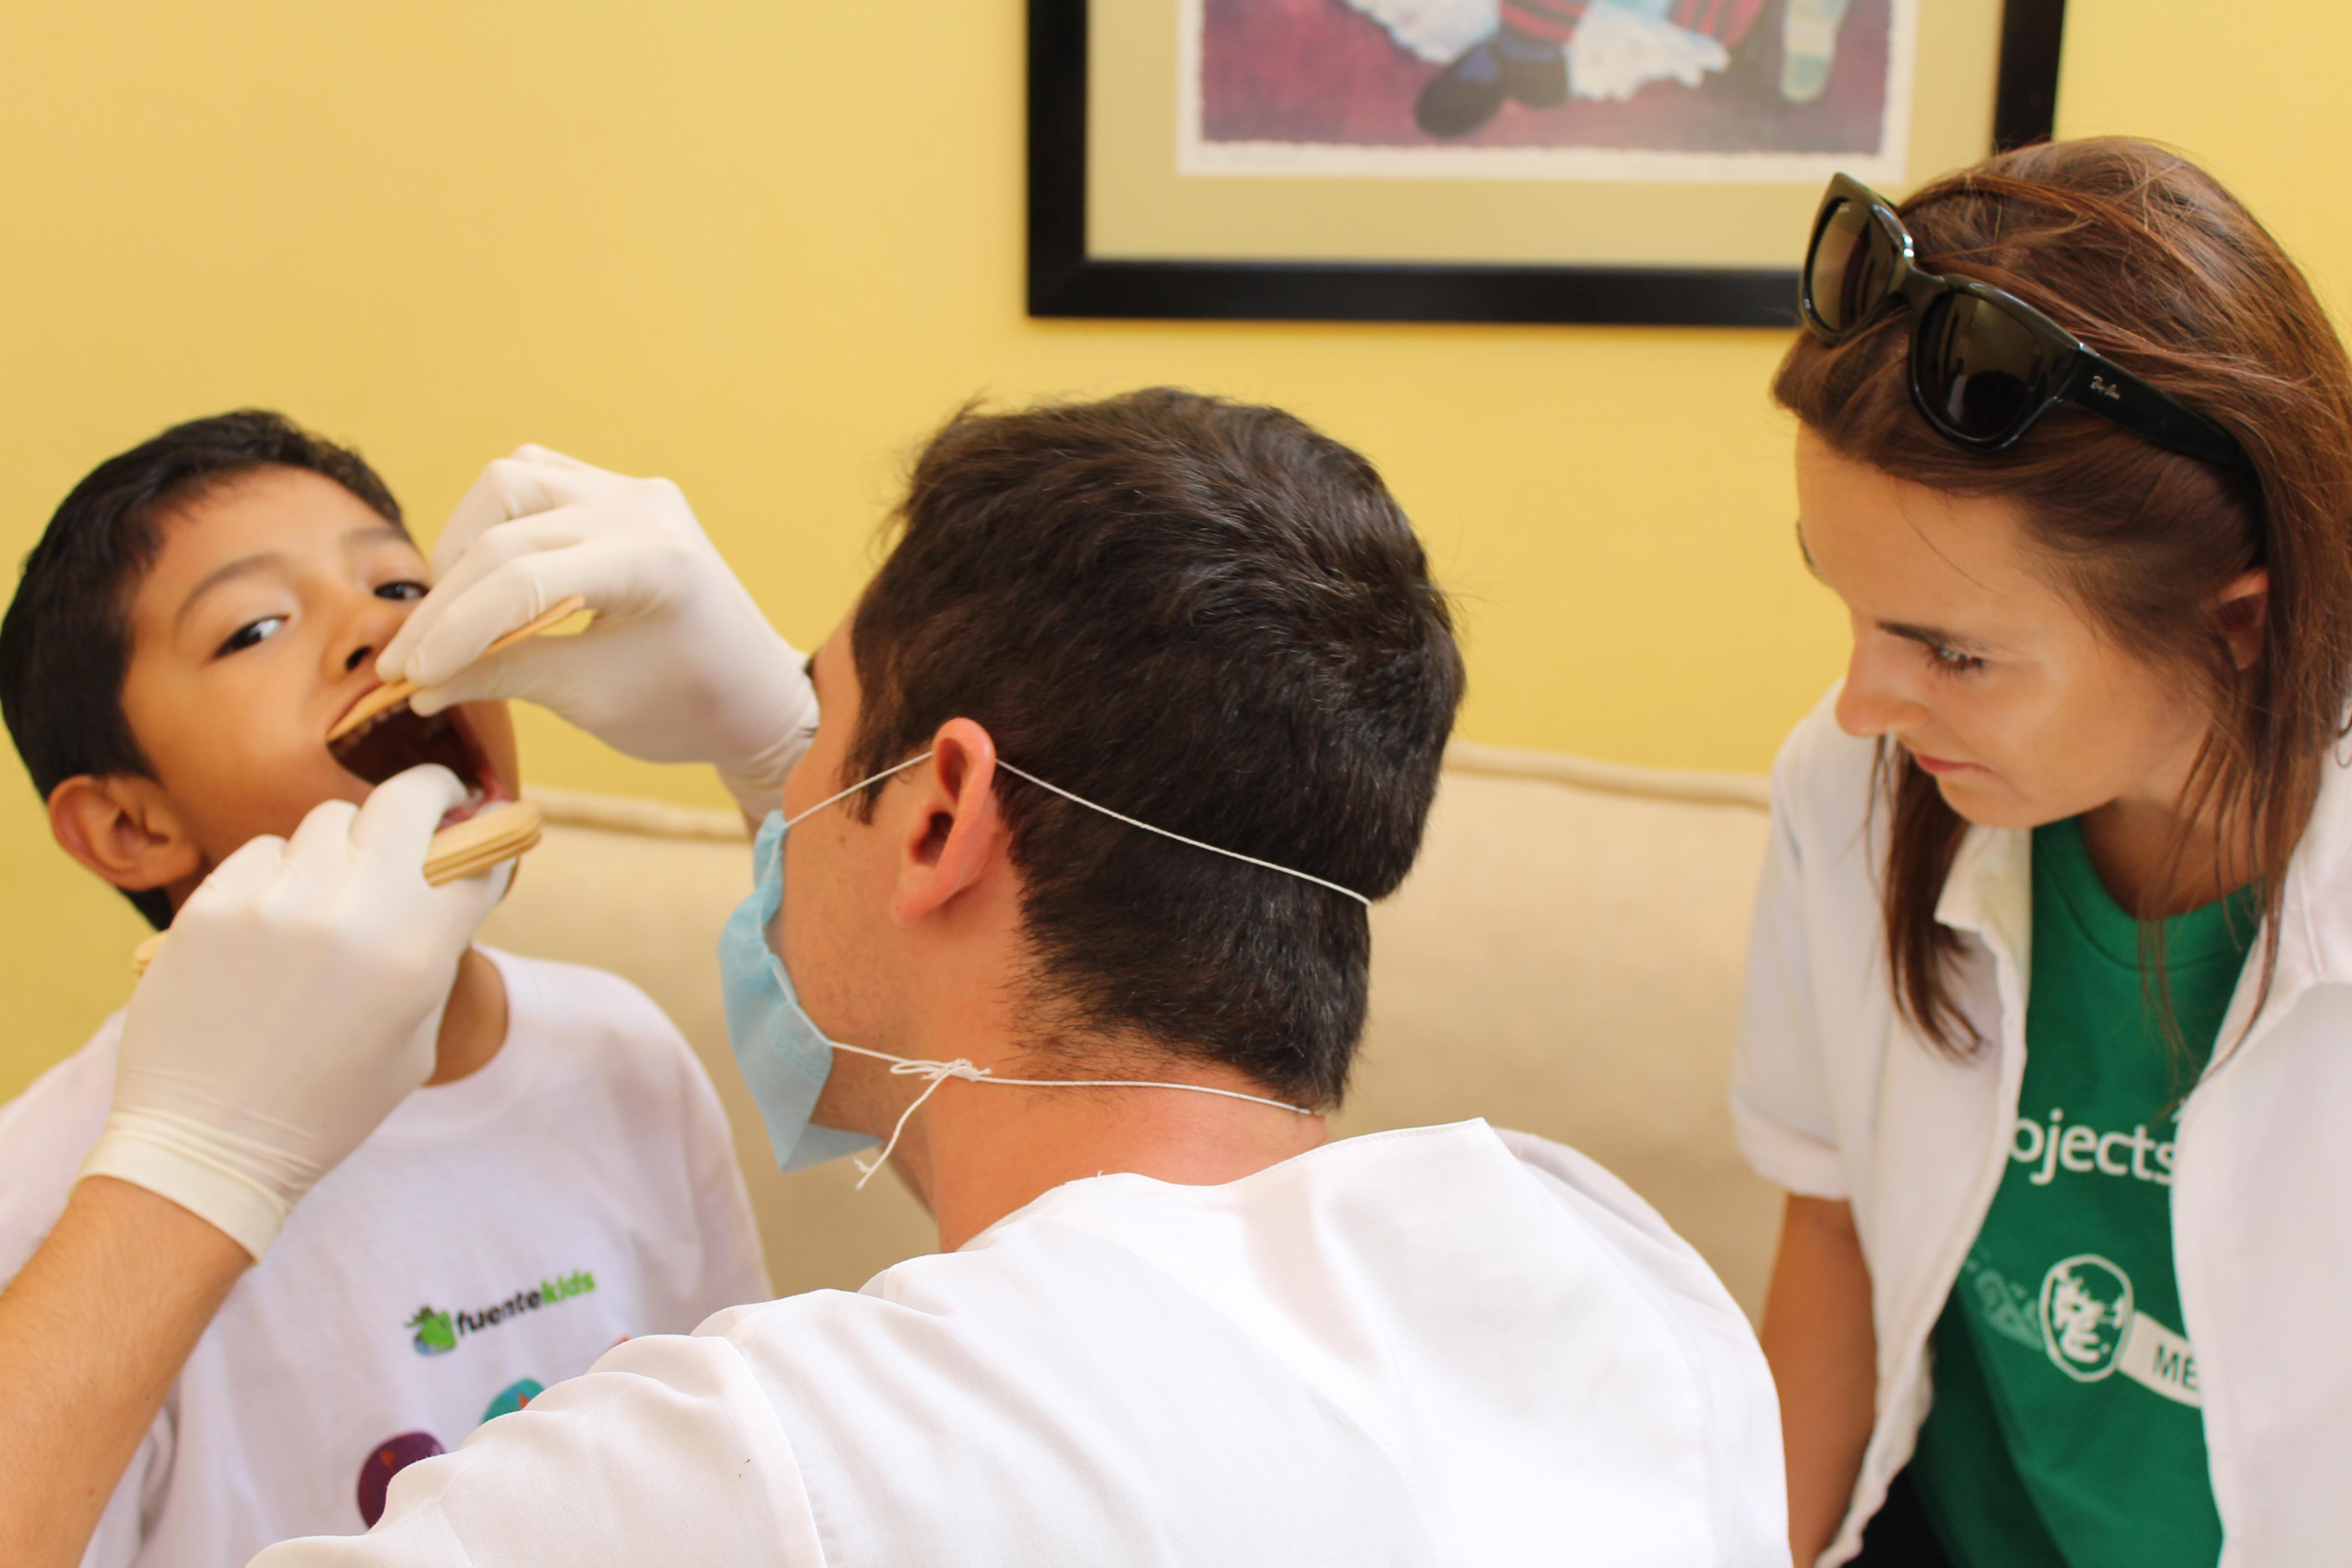 Male Dentistry intern examines a patient's mouth in a Healthcare centre during a Dentistry internship in Mexico.